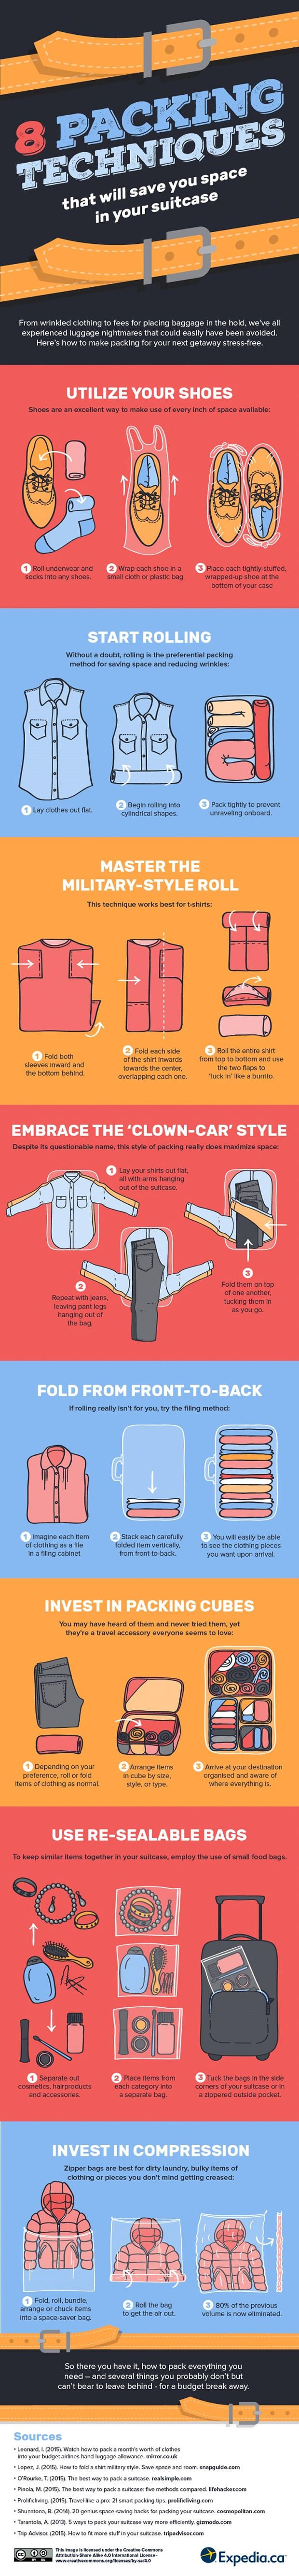 Use Every Inch of Your Suitcase With These Helpful Packing Tips | Mental Floss